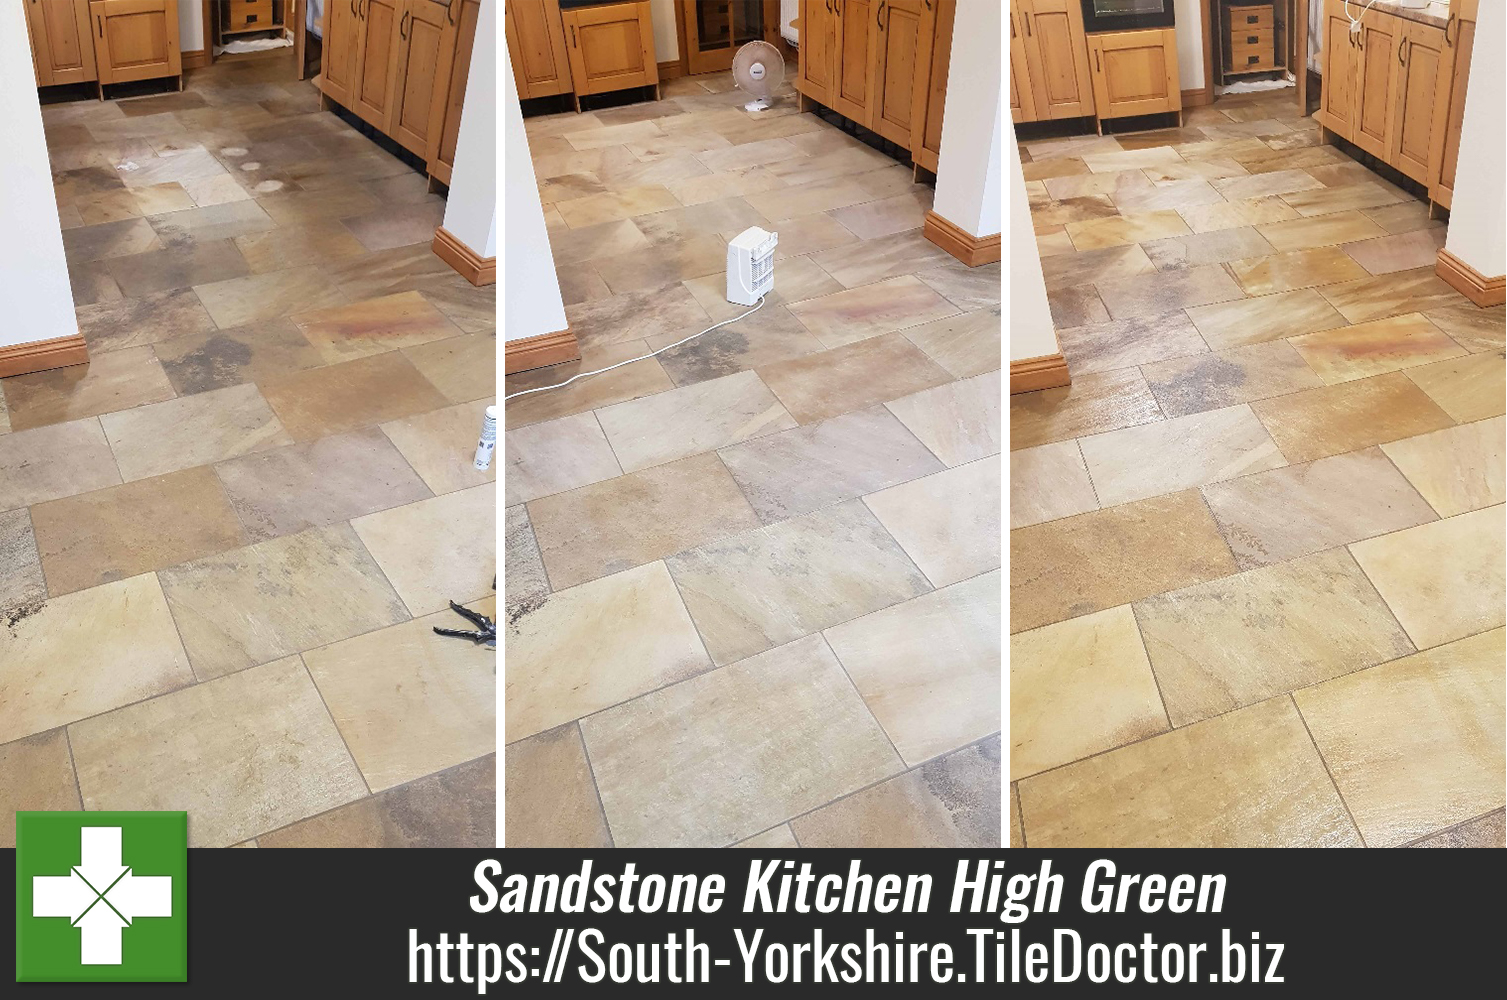 Modern Sandstone Floor Deep Cleaned and Sealed in High Green, Sheffield